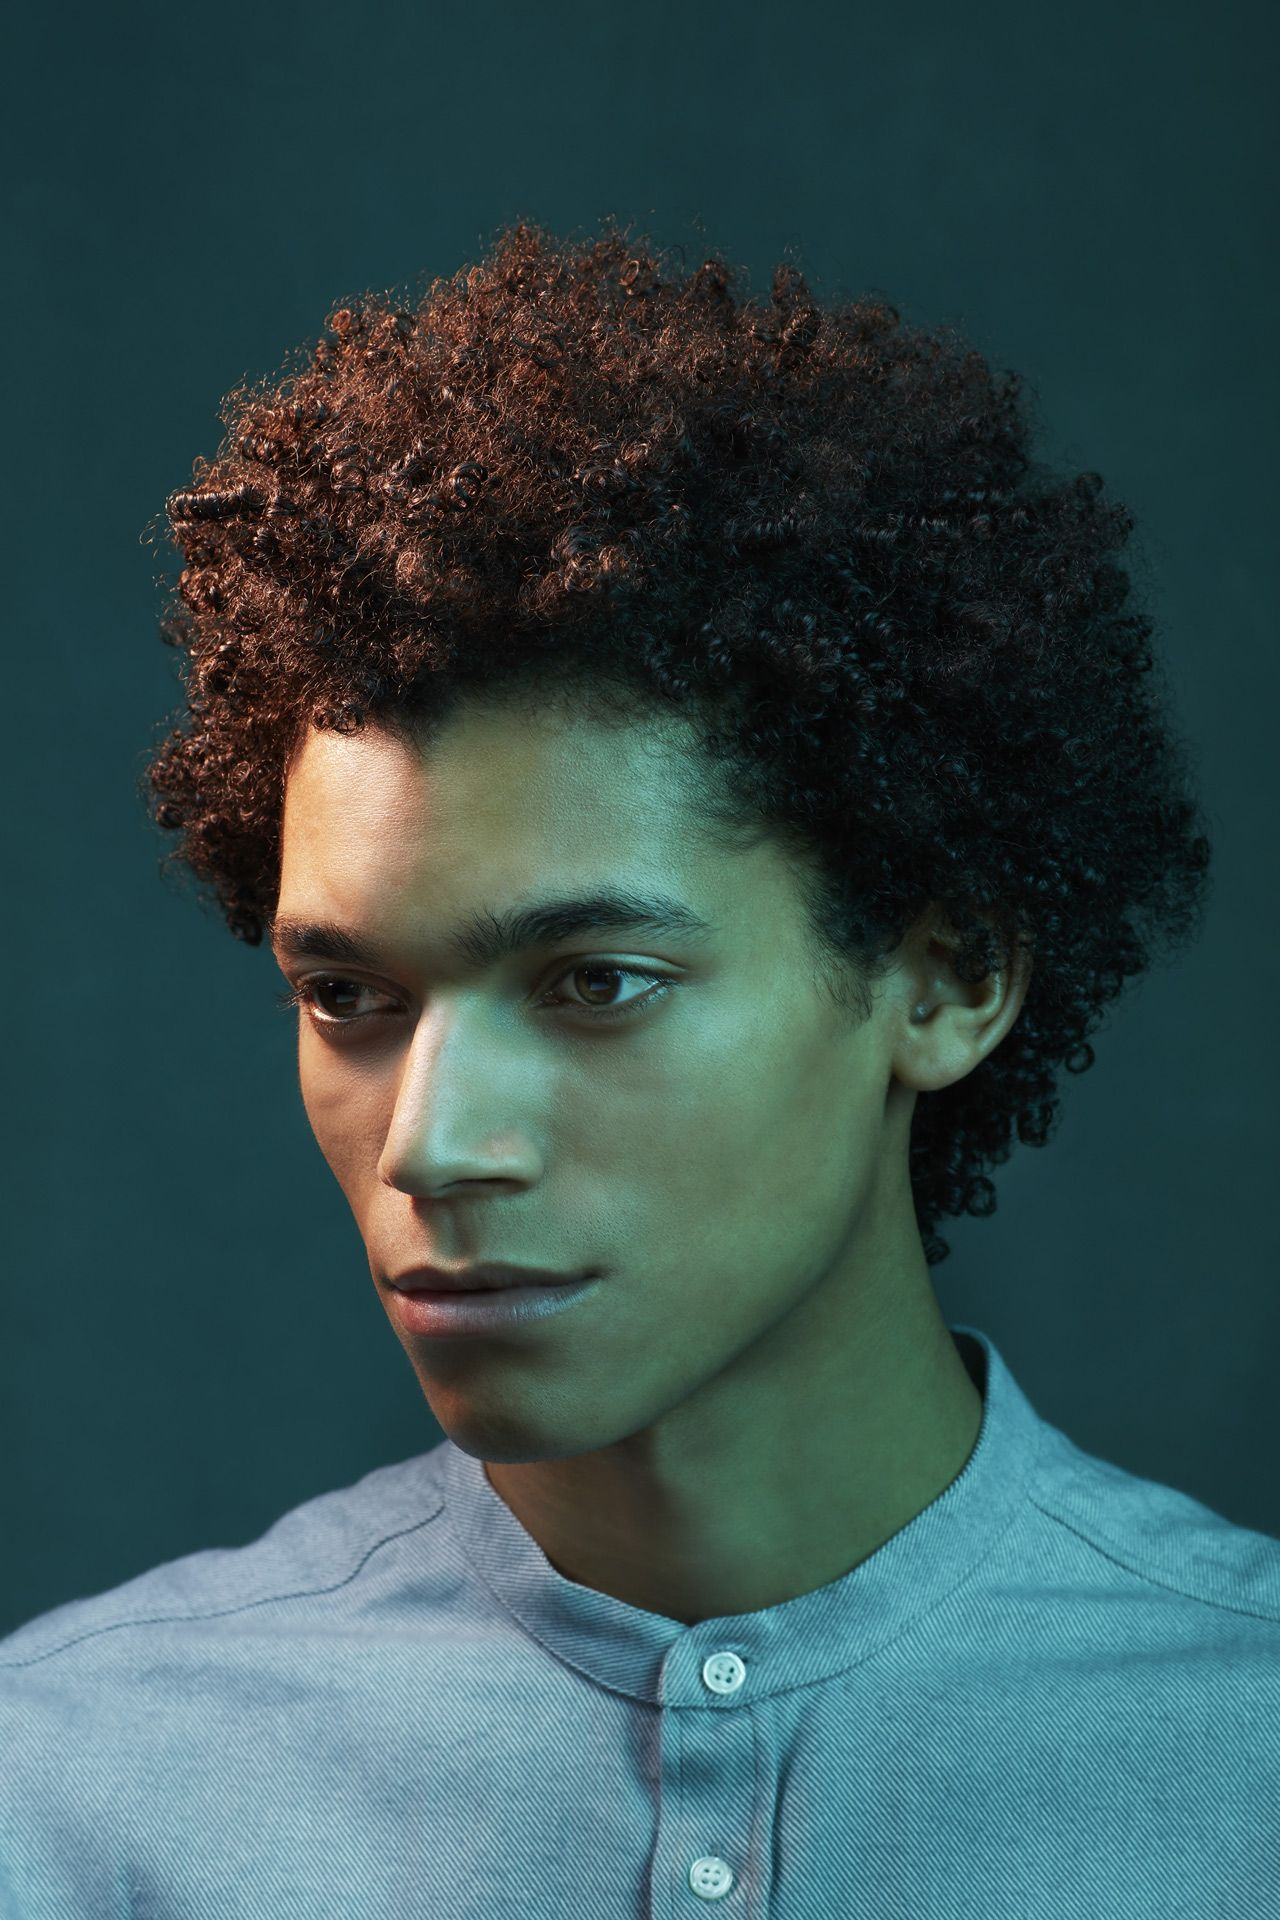 portrait of dark skinned man curly brown hair looking pensive in colored lighting on dark green background by Simon Duhamel for Introspect